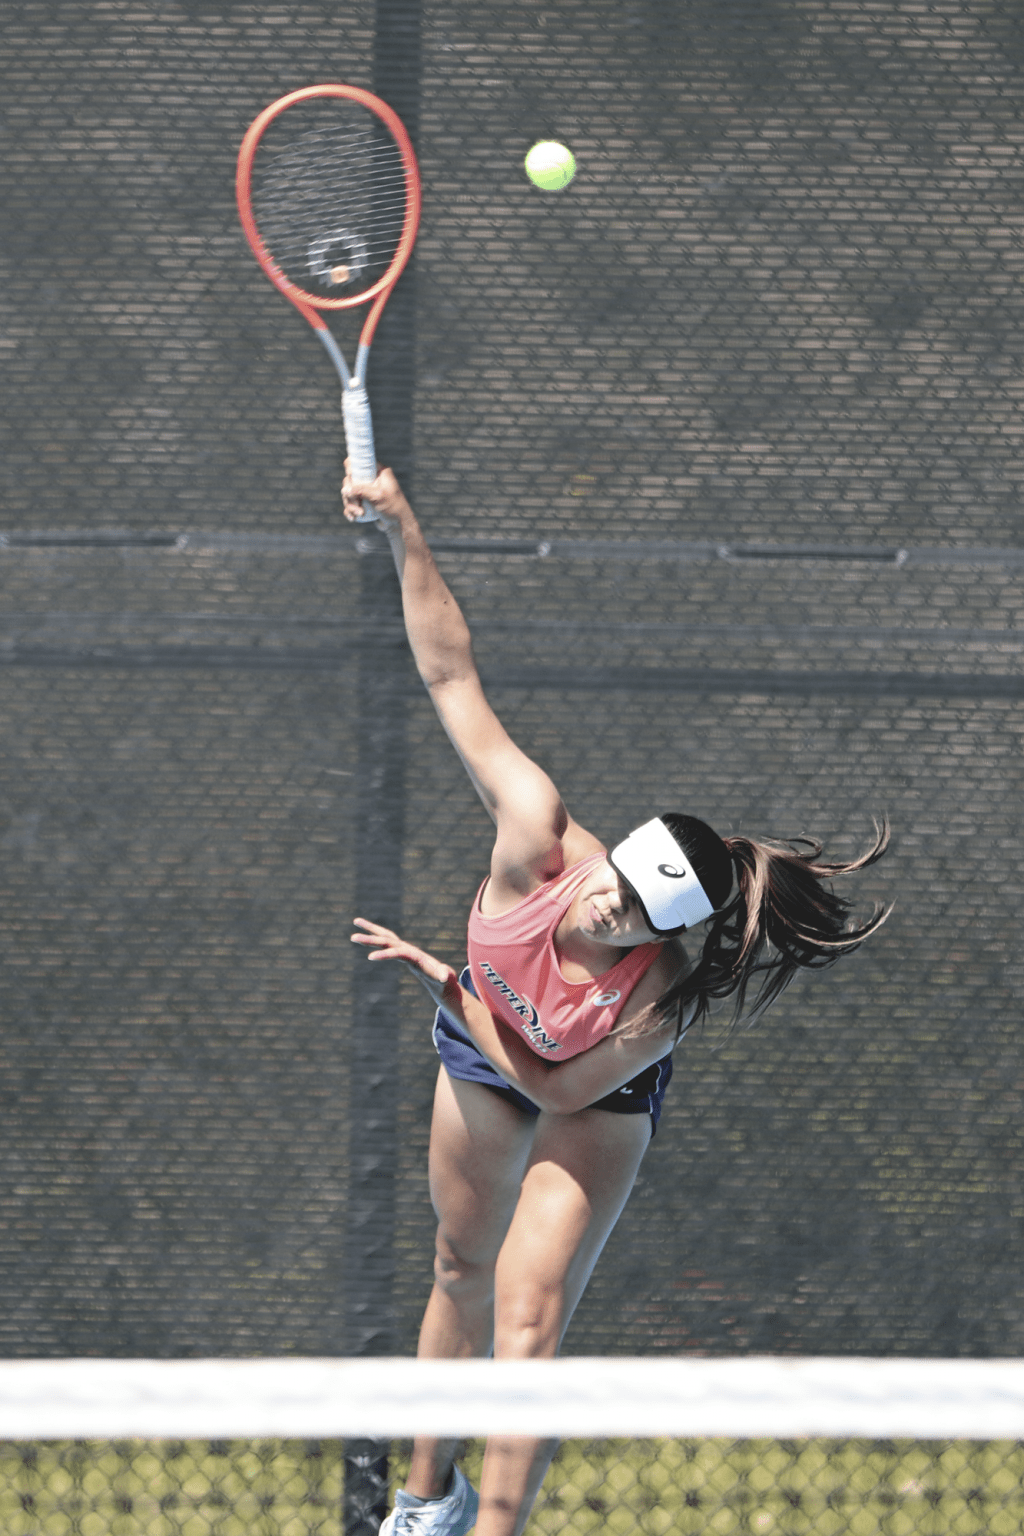 Graduate student Shiori Fukuda serves in her singles match against the Broncos on March 25. Fukuda's victory in singles gave the Waves the sweep.